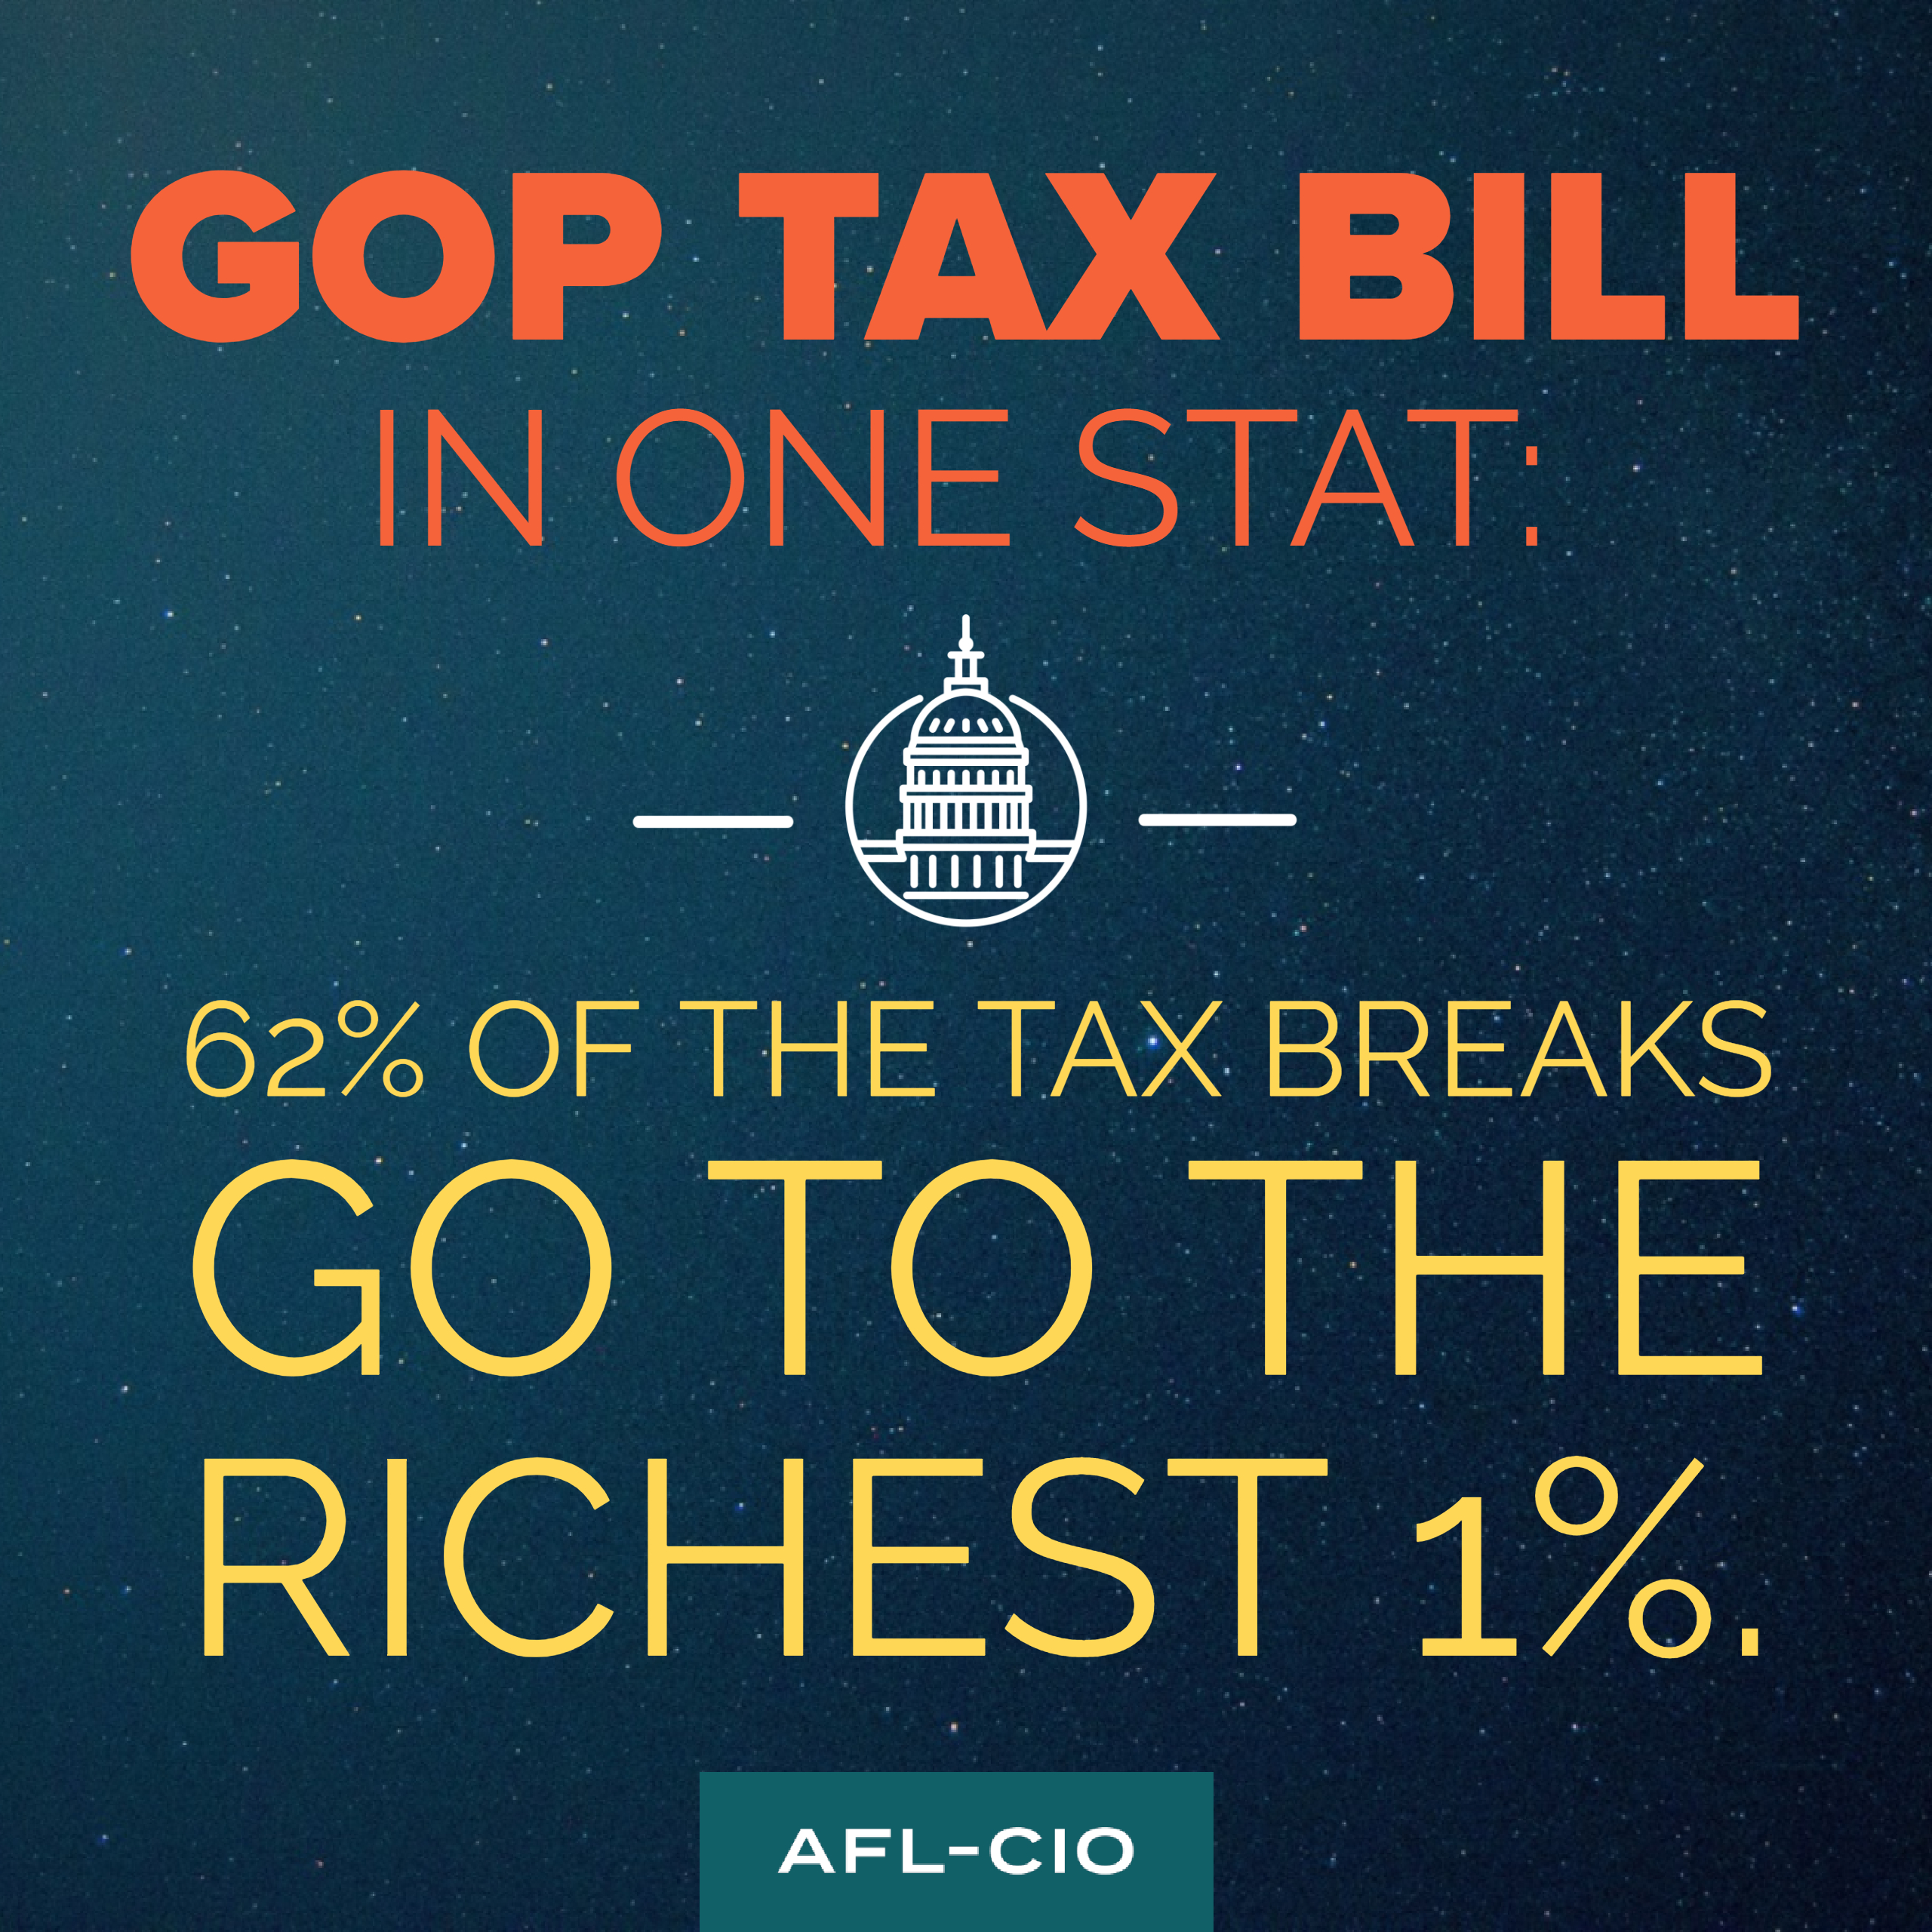 GOP Tax Bill in One Stat: 62% of the Tax Breaks Go To the Richest 1%